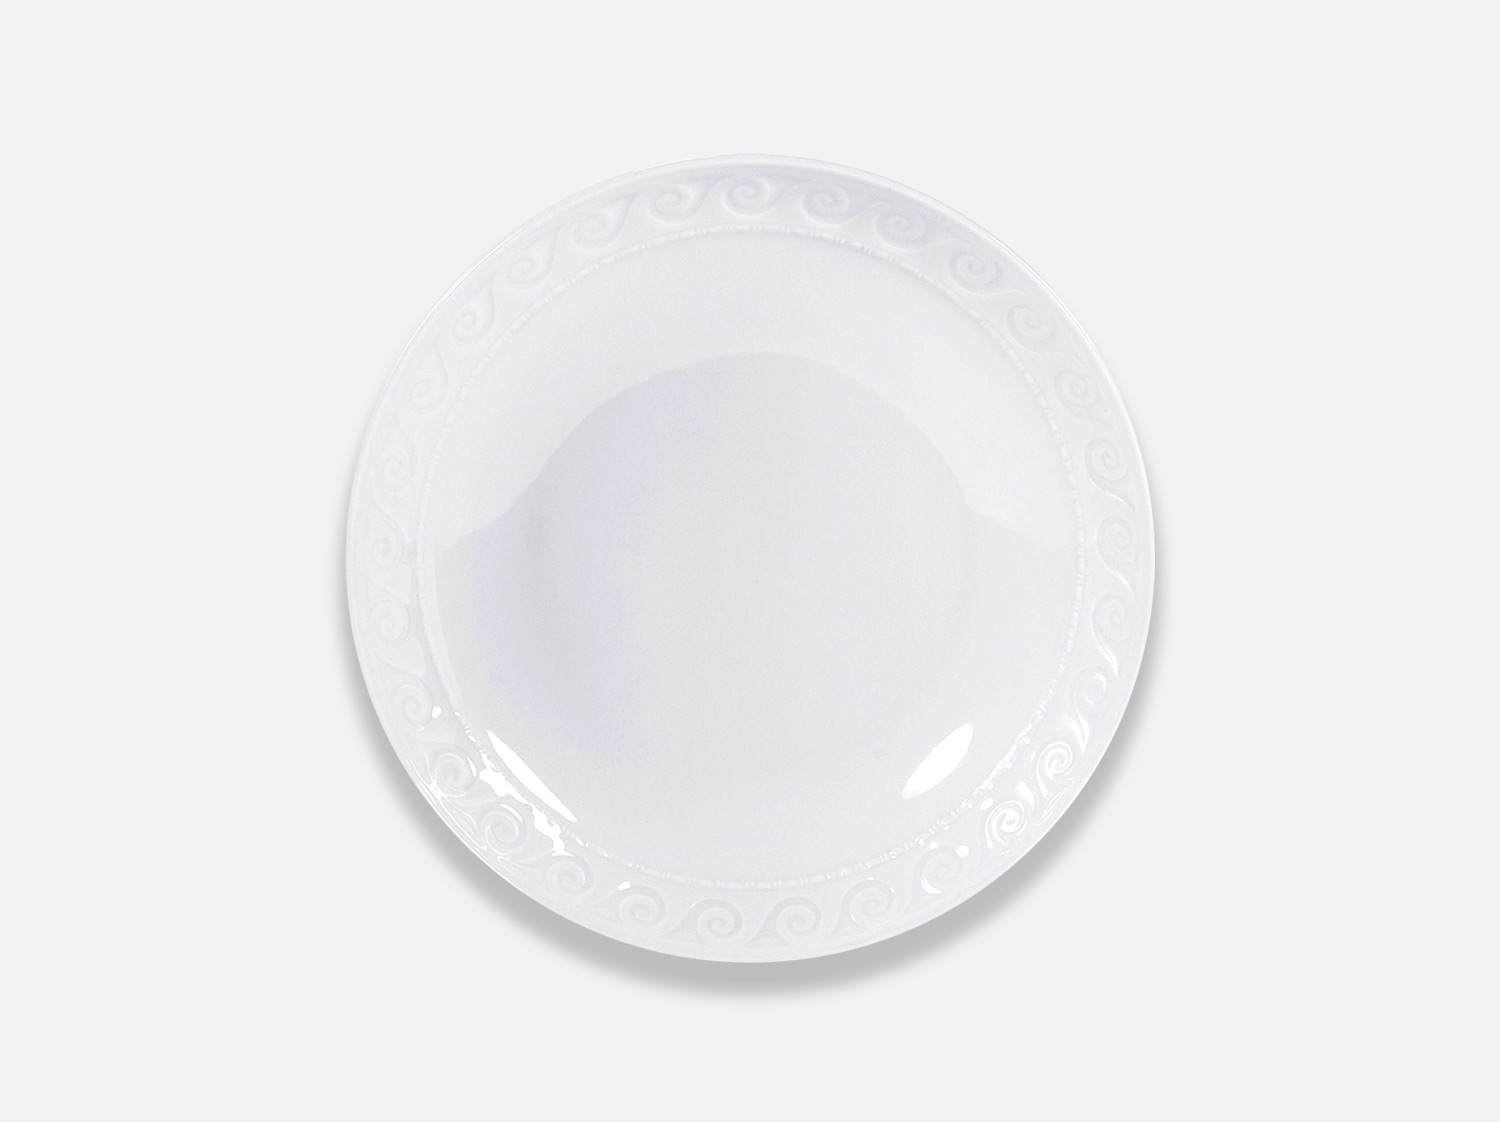 Assiette à pâtes 23 cm en porcelaine de la collection Louvre Bernardaud